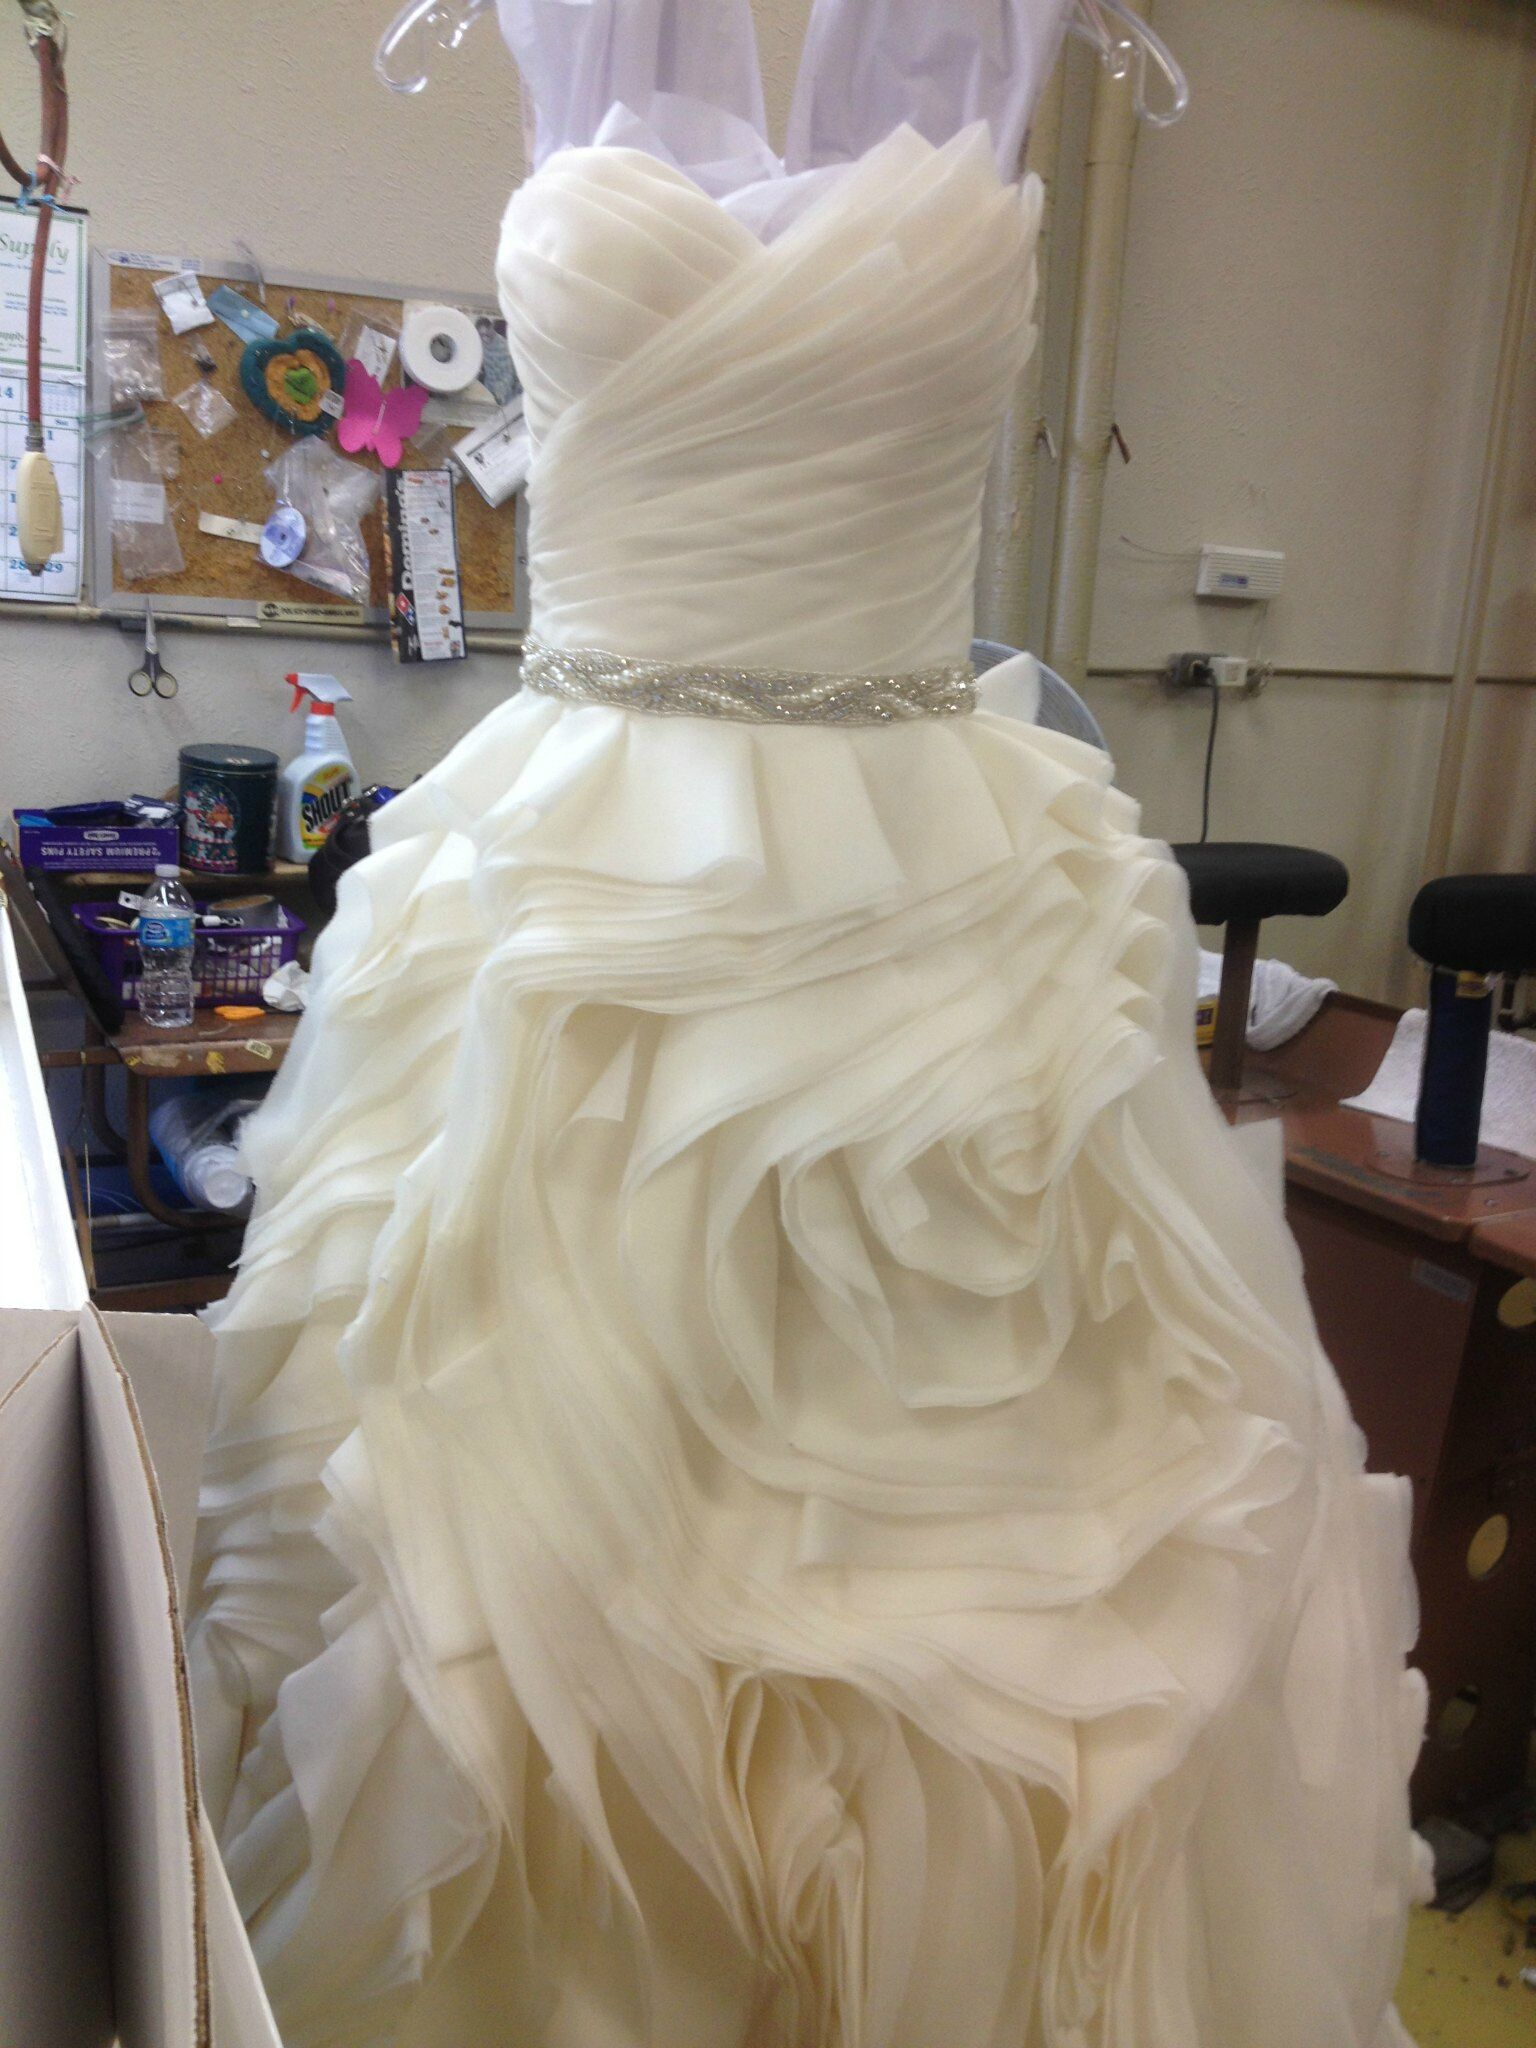 Finto Bridal Cleaners/ Eagle Cleaners,Inc. - Dallas, TX